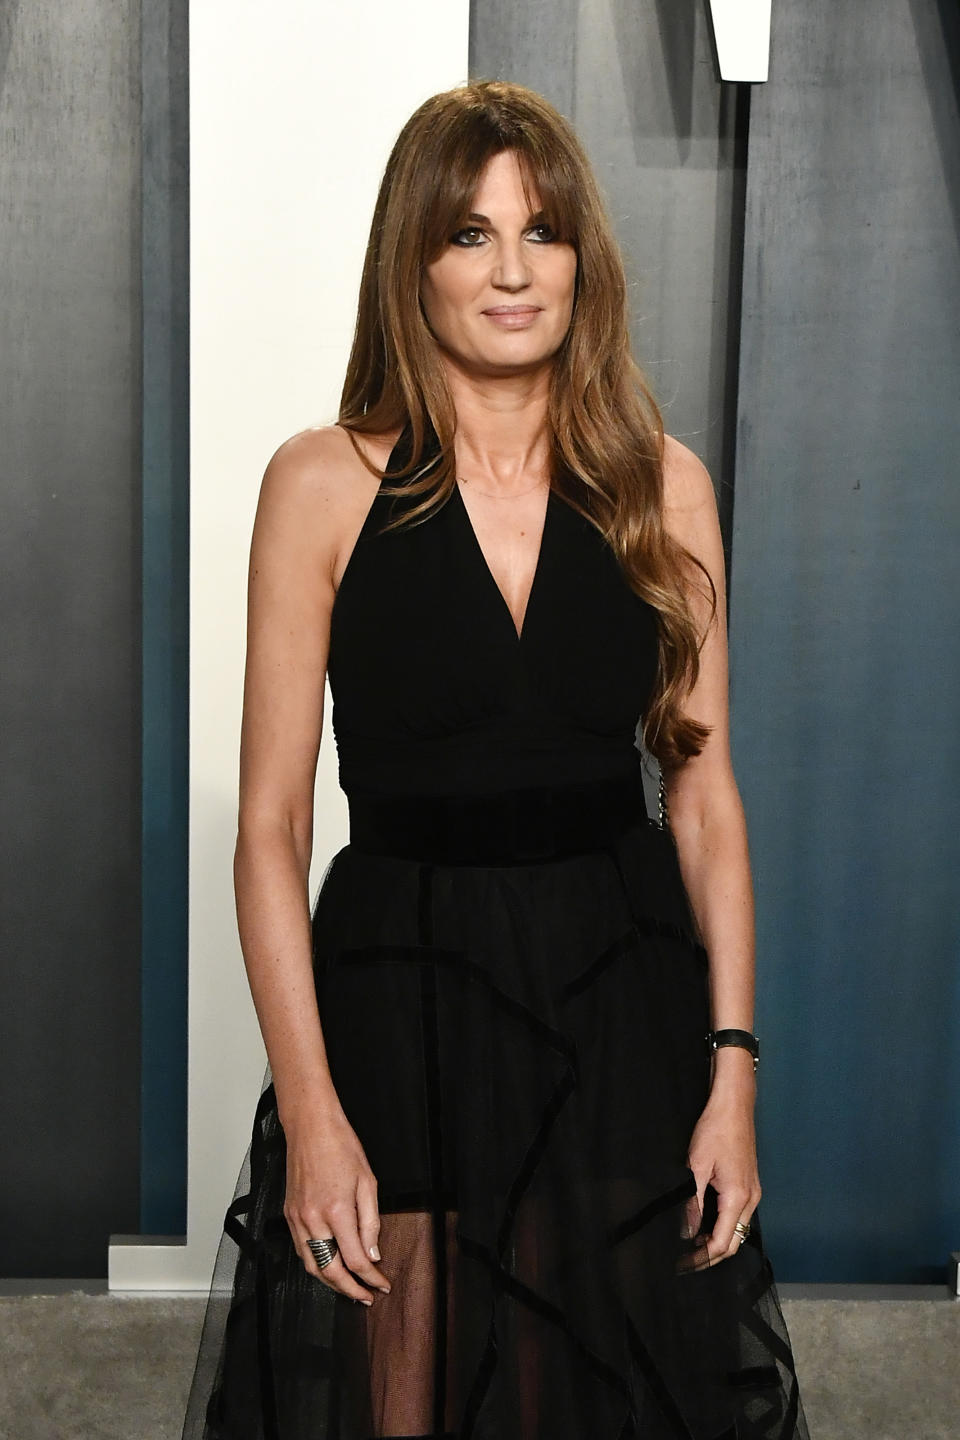 Film producer and socialite Jemima Khan in 2020Getty Images